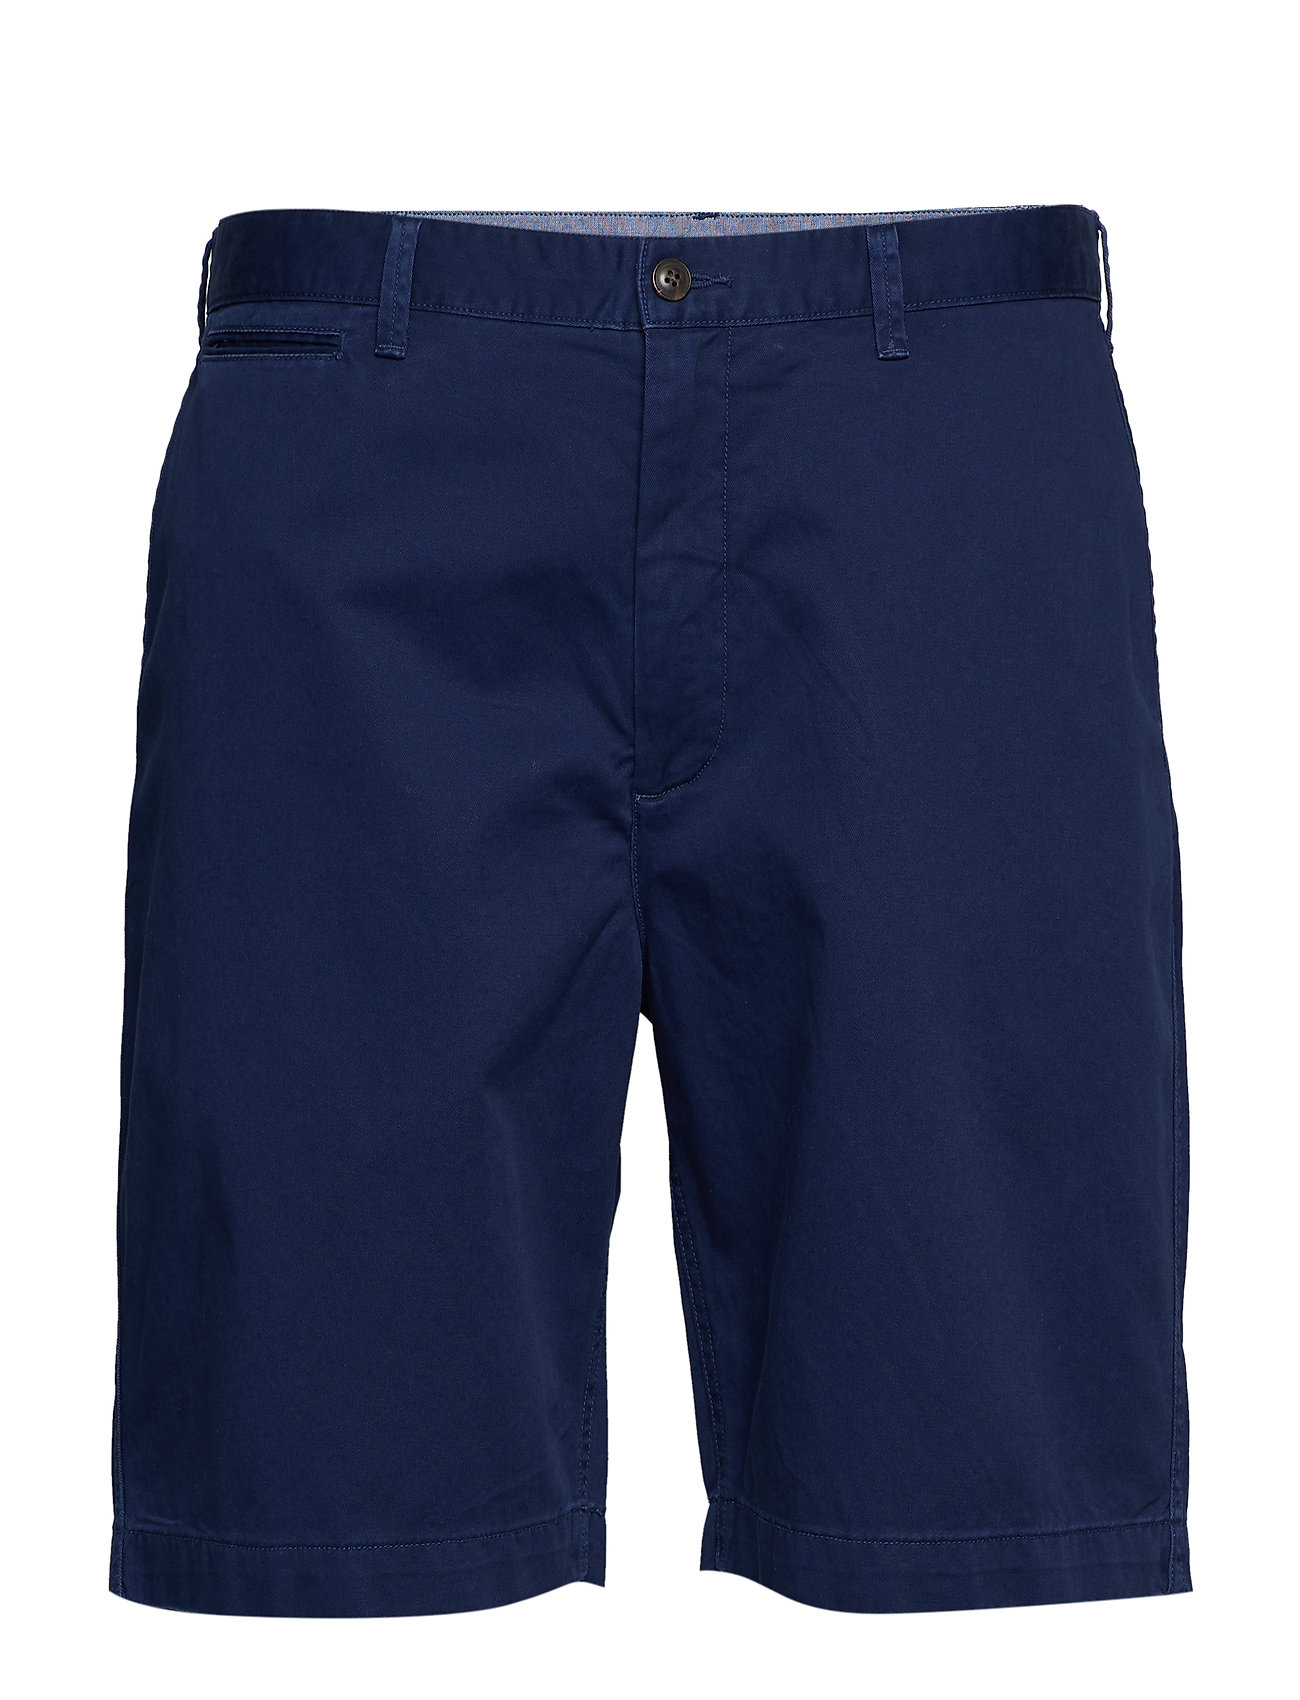 Polo Ralph Lauren Big & Tall Classic Fit Cotton Chino Short